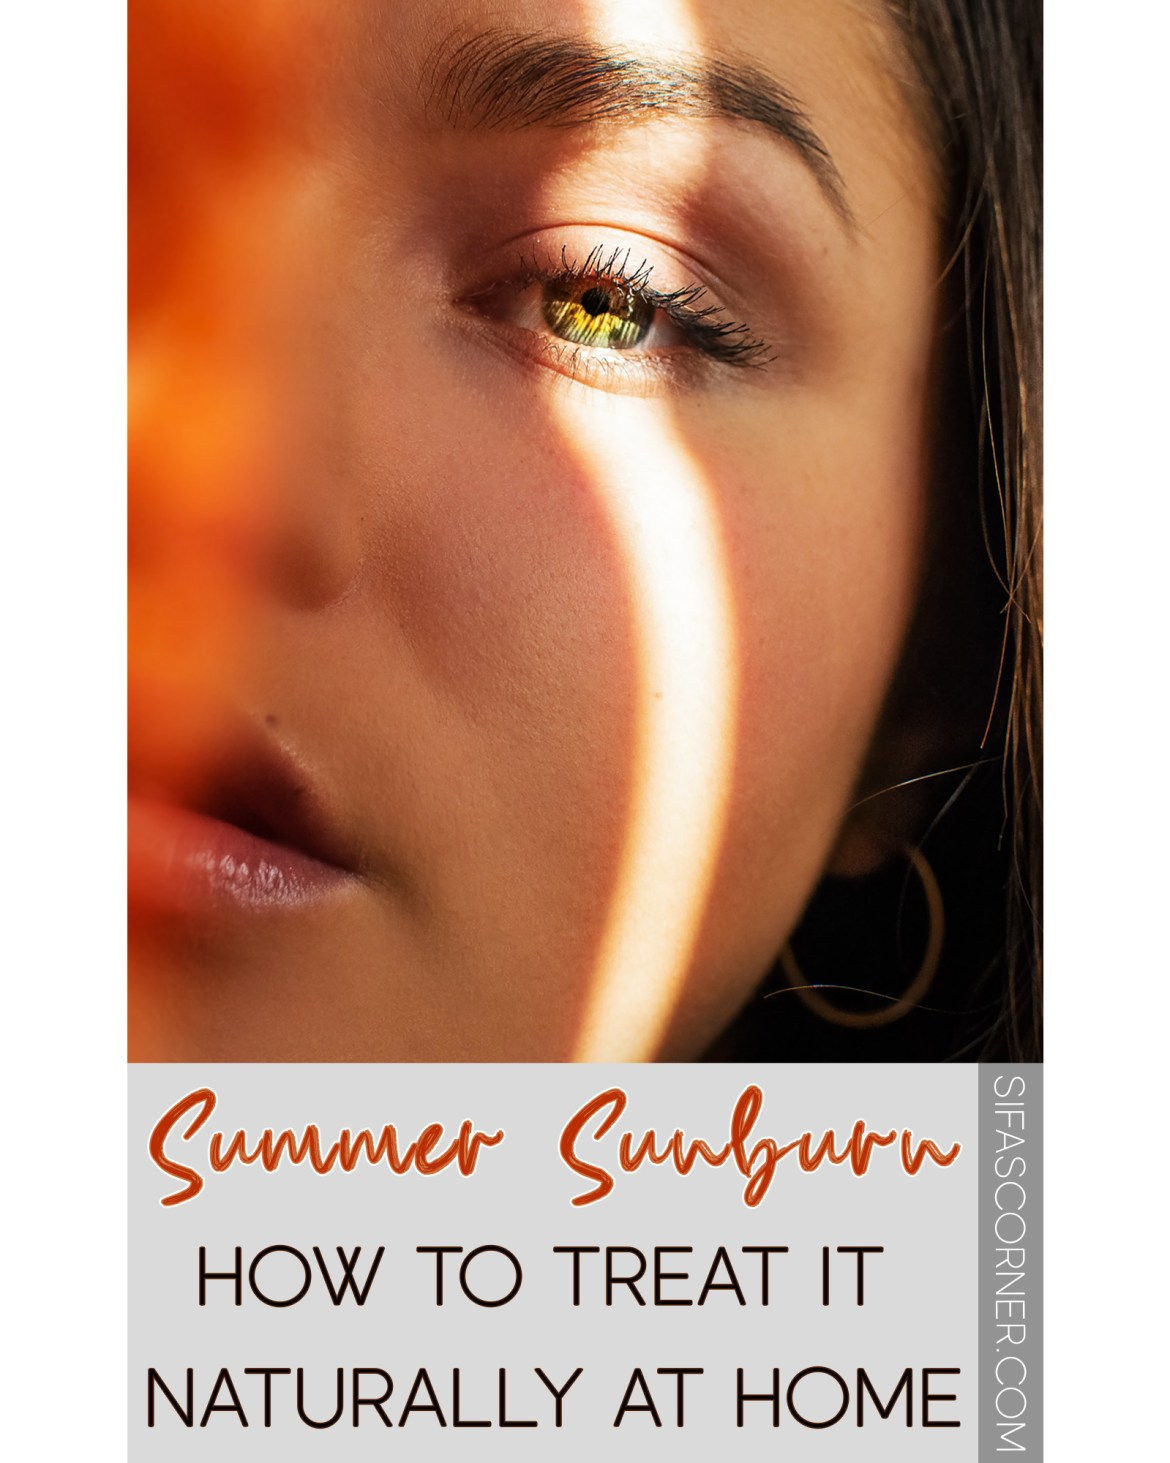 How to treat summer sunburn naturally at home